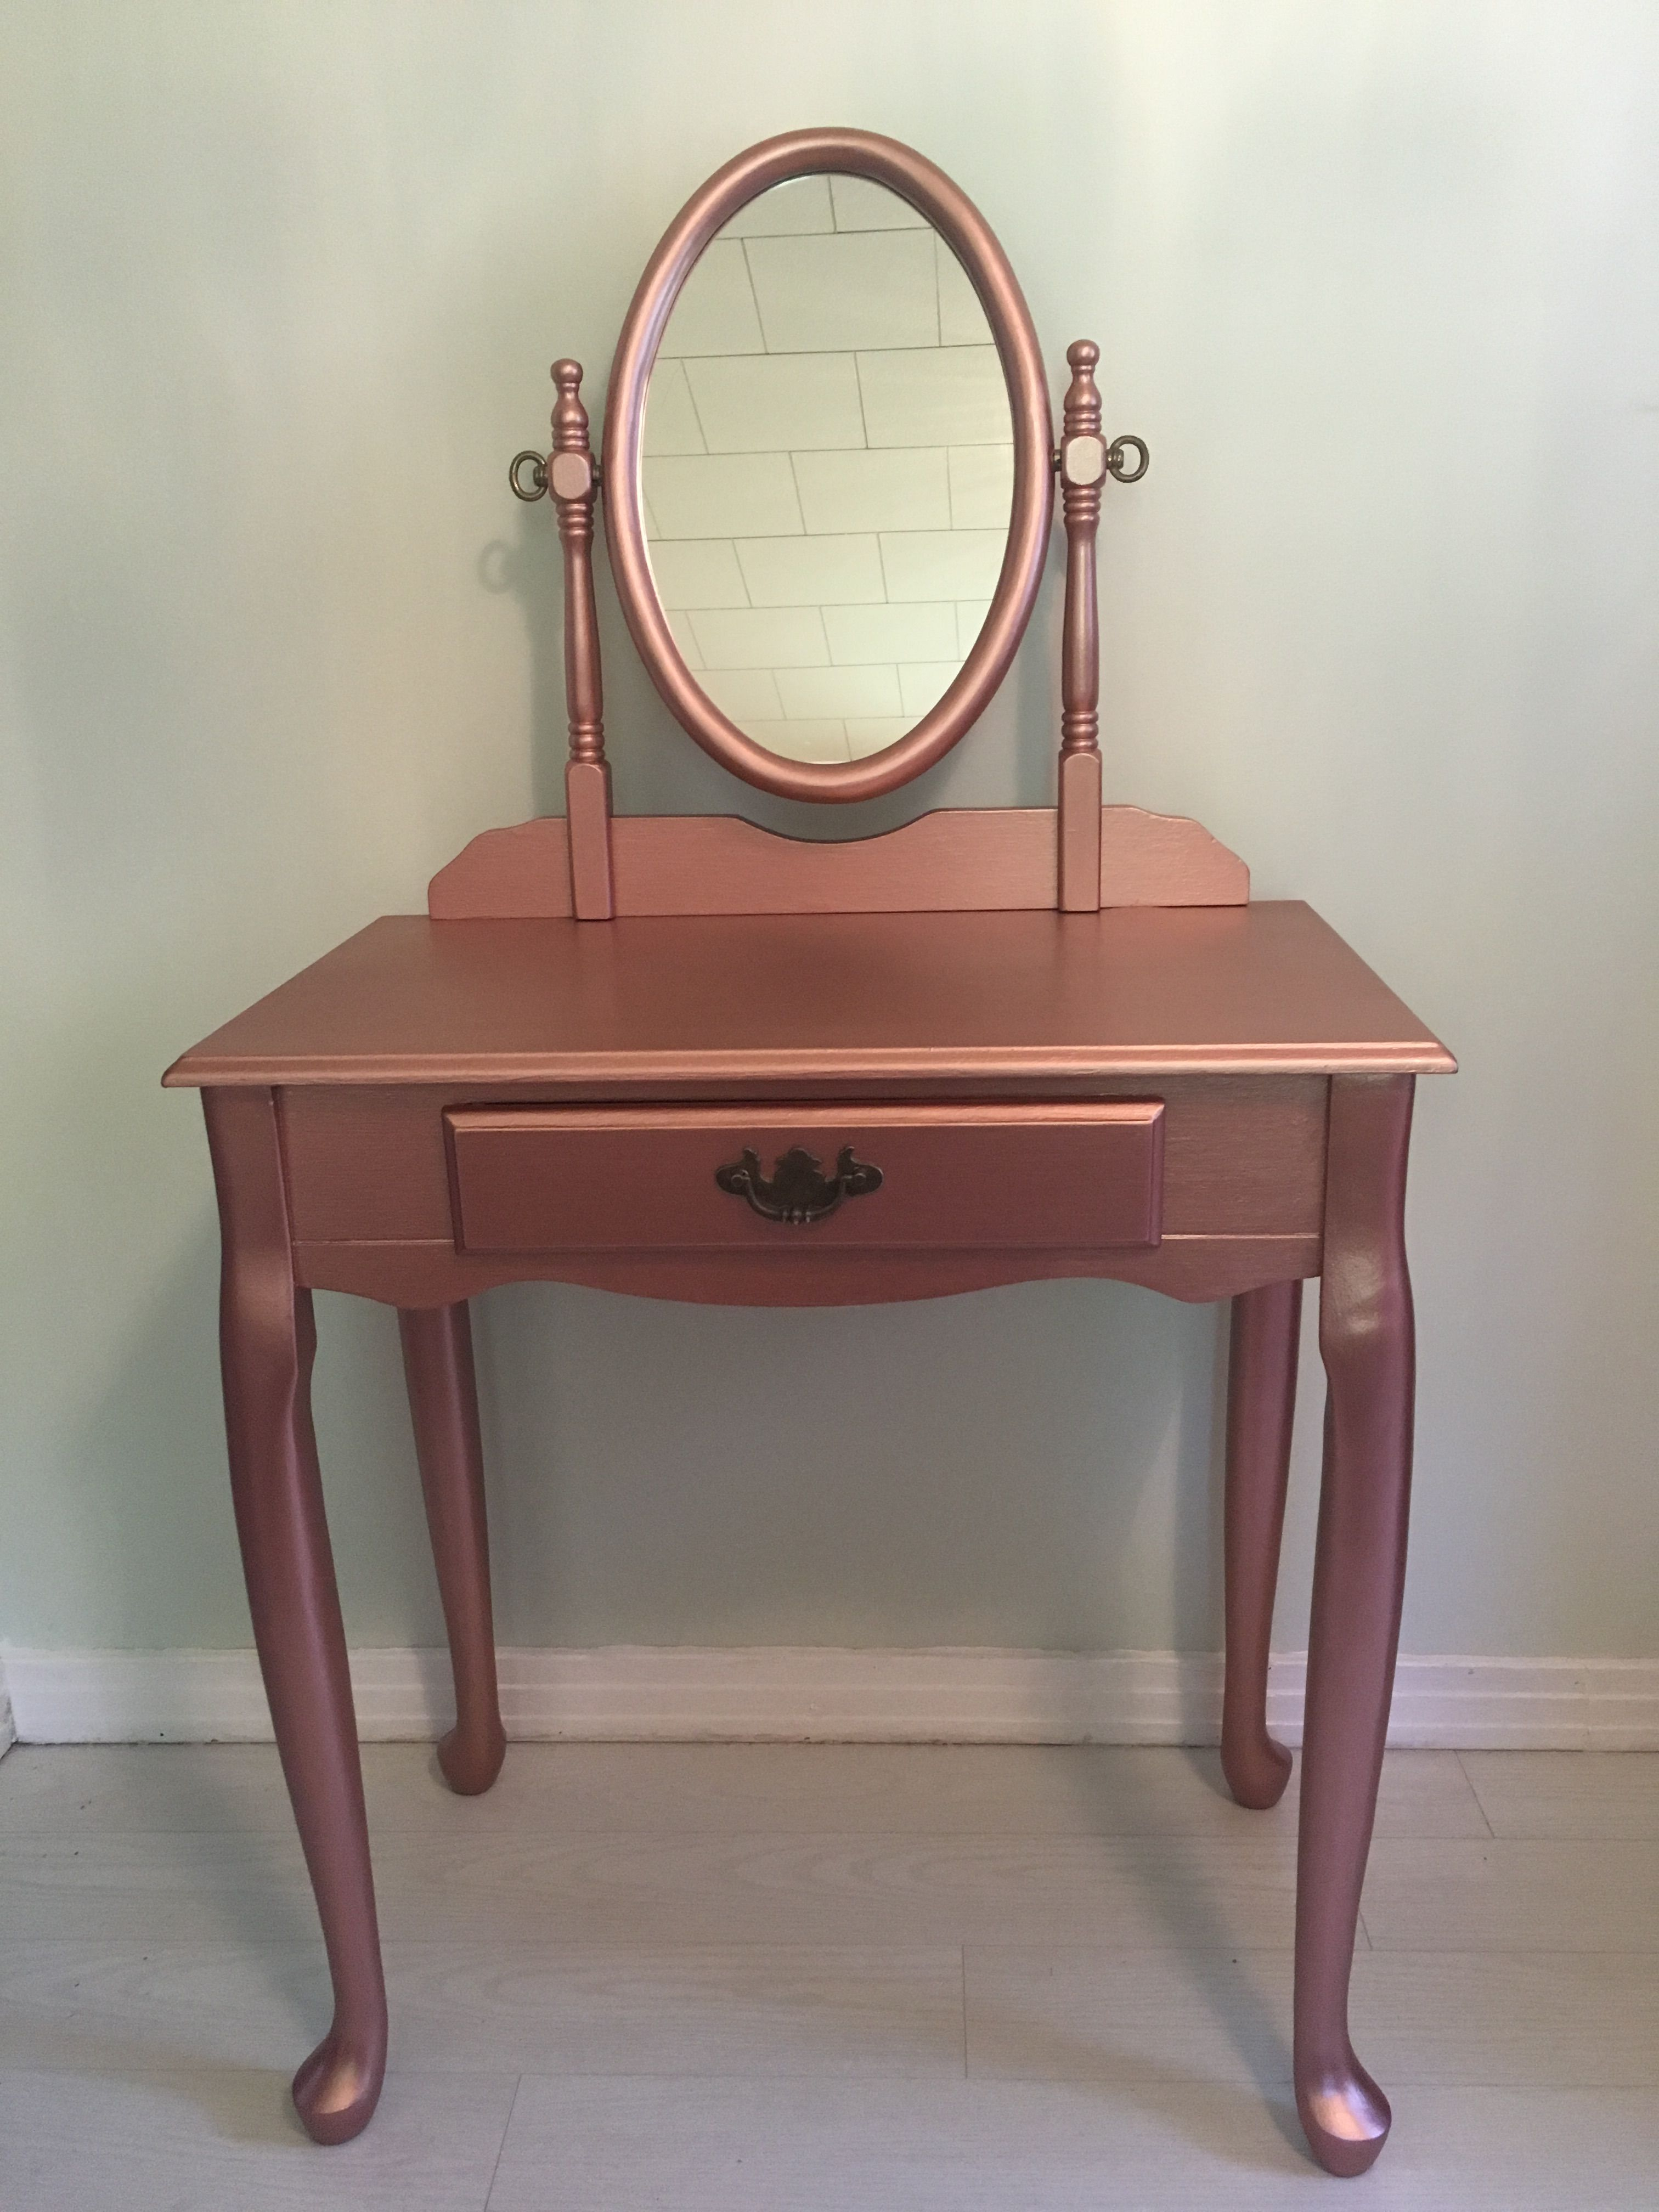 I painted this cherry wood vanity rose gold for my mother she loved